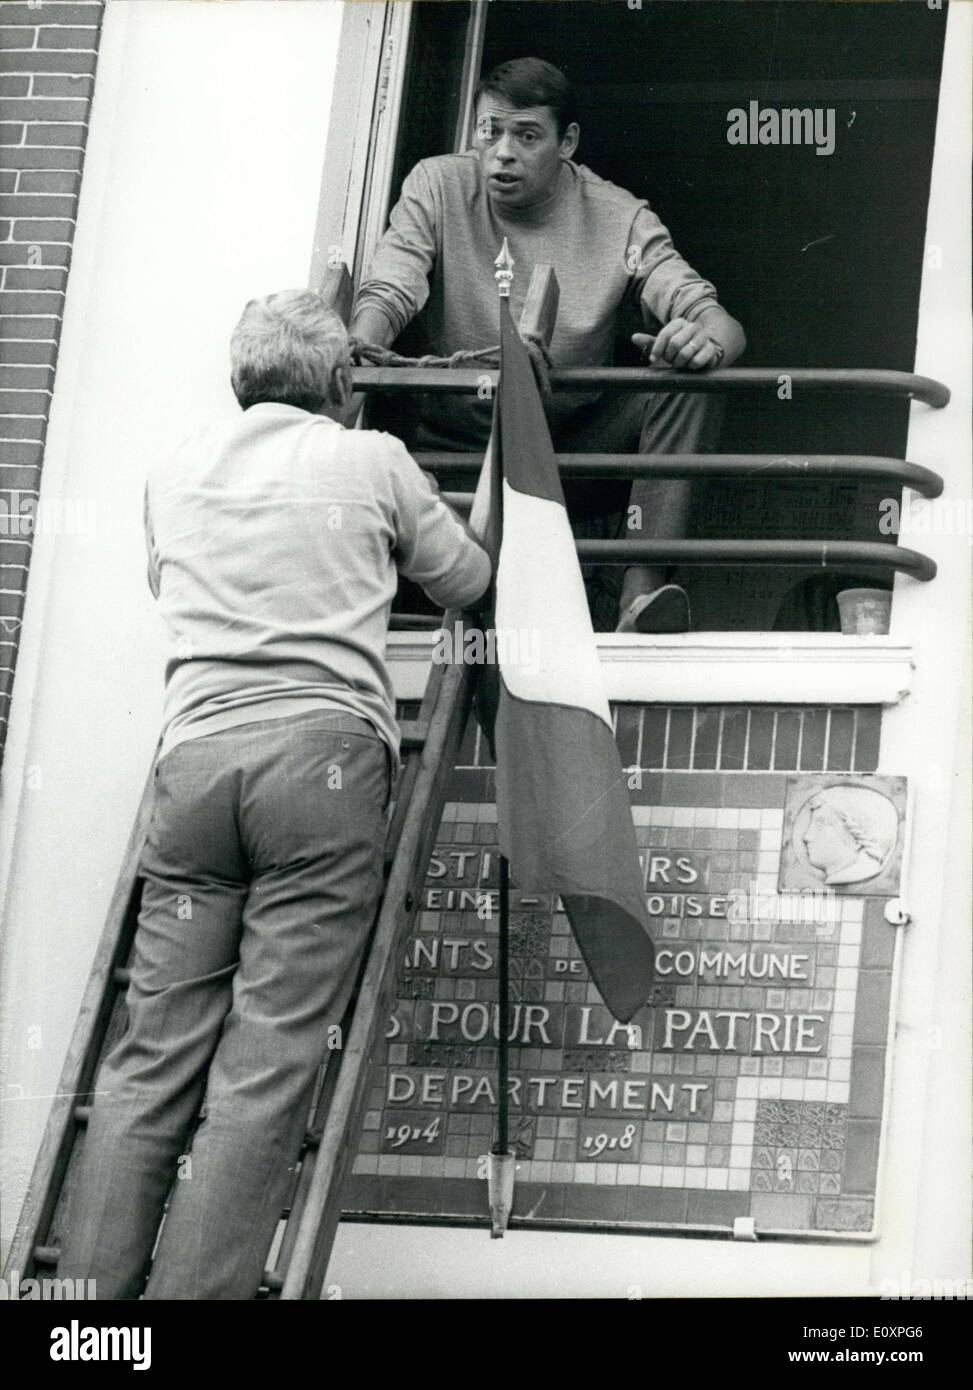 Jul. 22, 1967 - Jacques Brel Getting Directions from Andre Cayatte in ''Maniac' - Stock Image